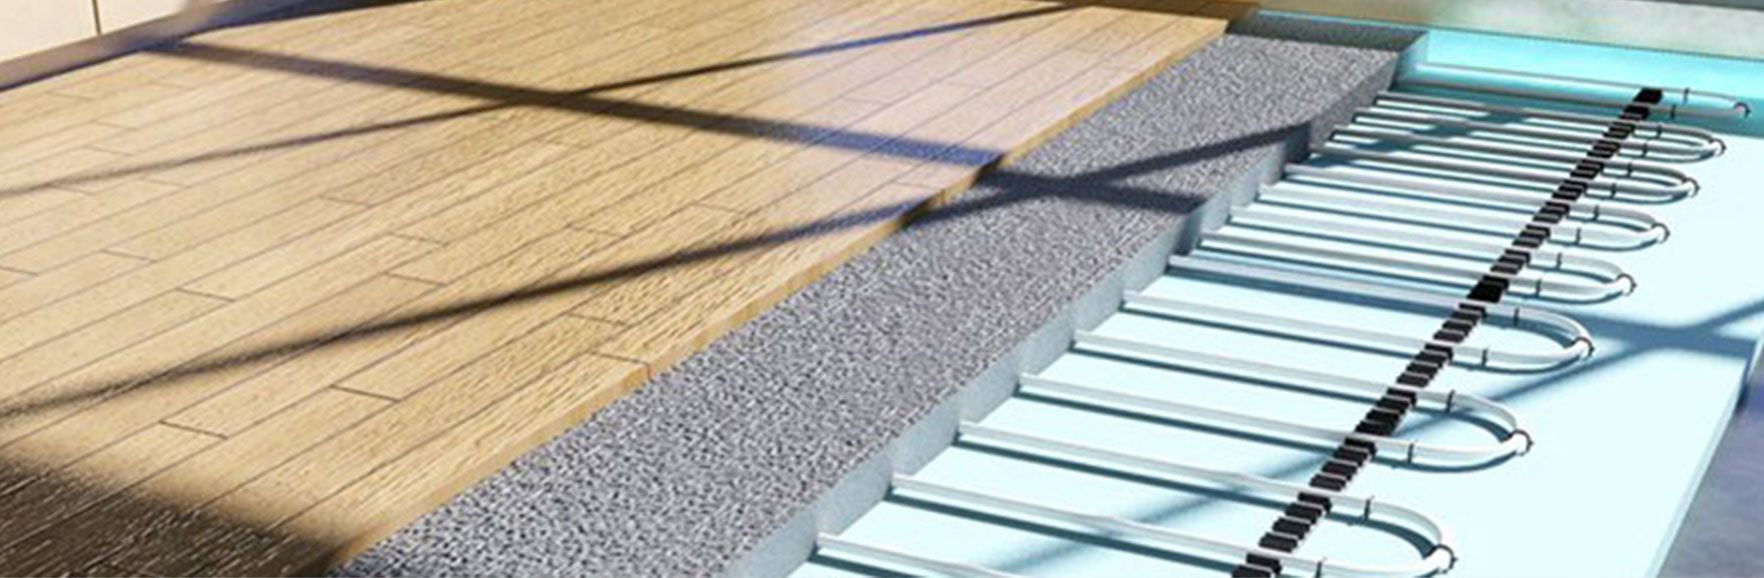 Clip and track Underfloor heating system